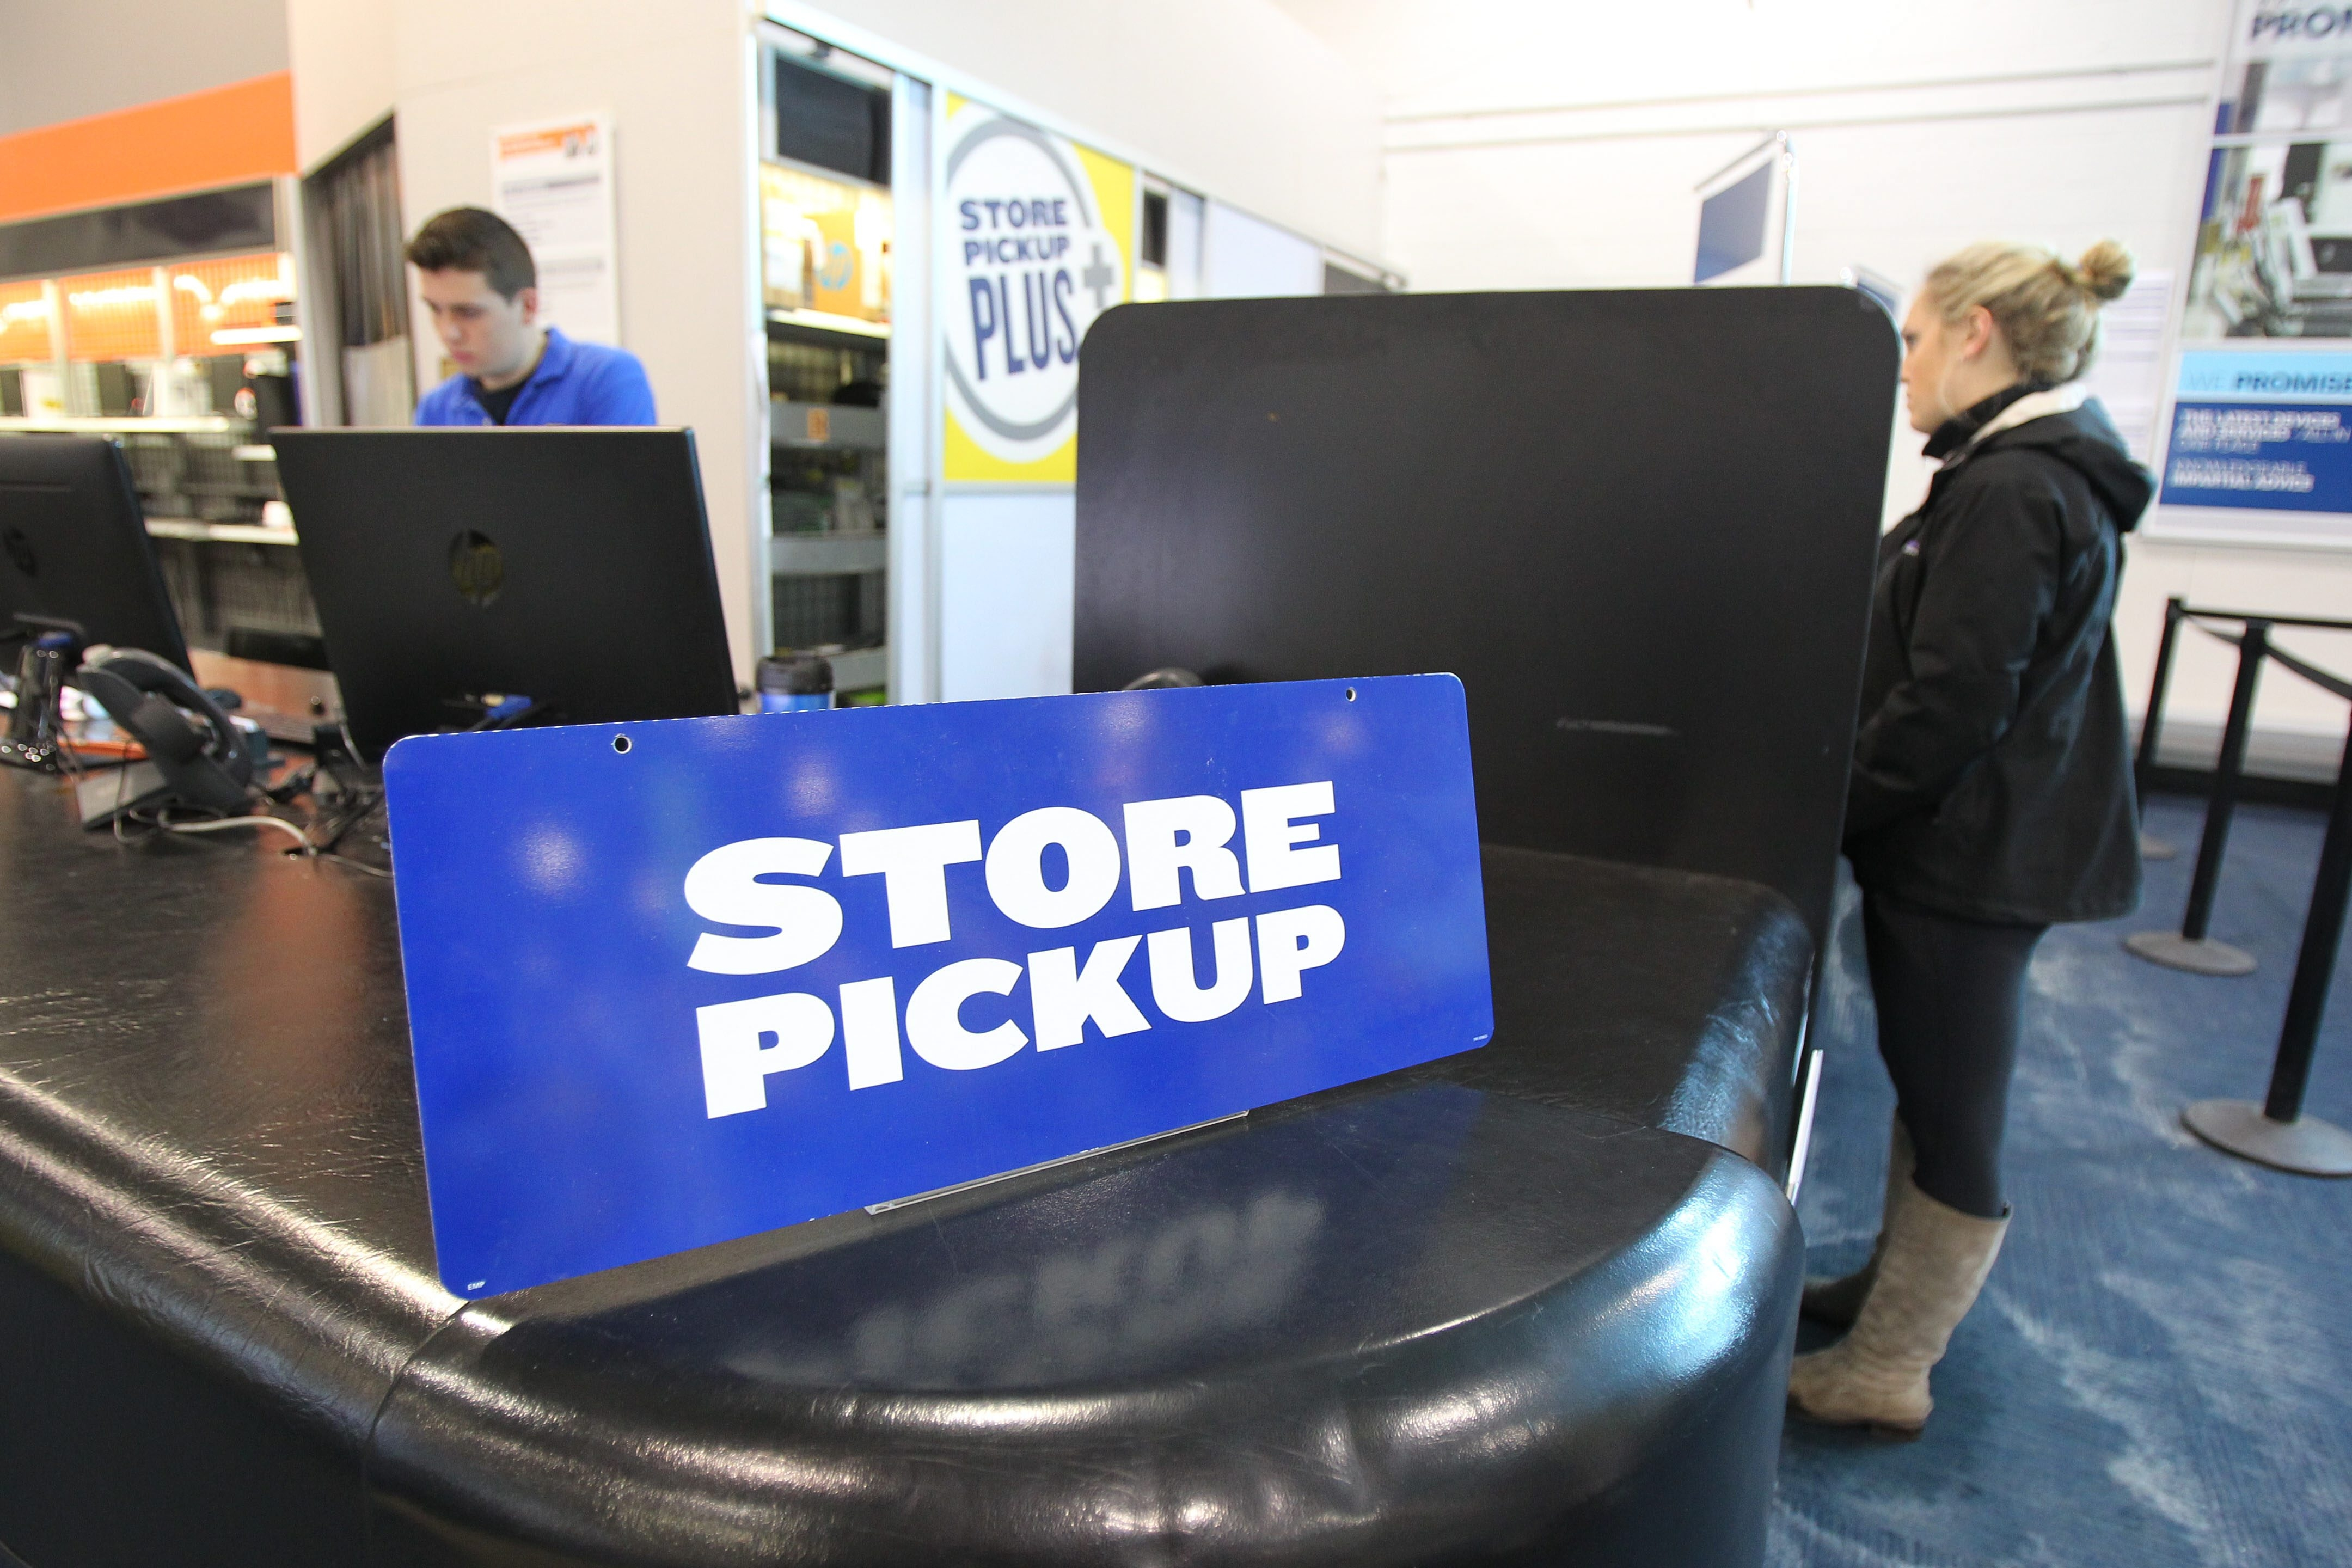 Best Buy is among the retailers allowing customers to buy products on its website and pick up in store, as seen above in a picture taken earlier this month in Amherst.